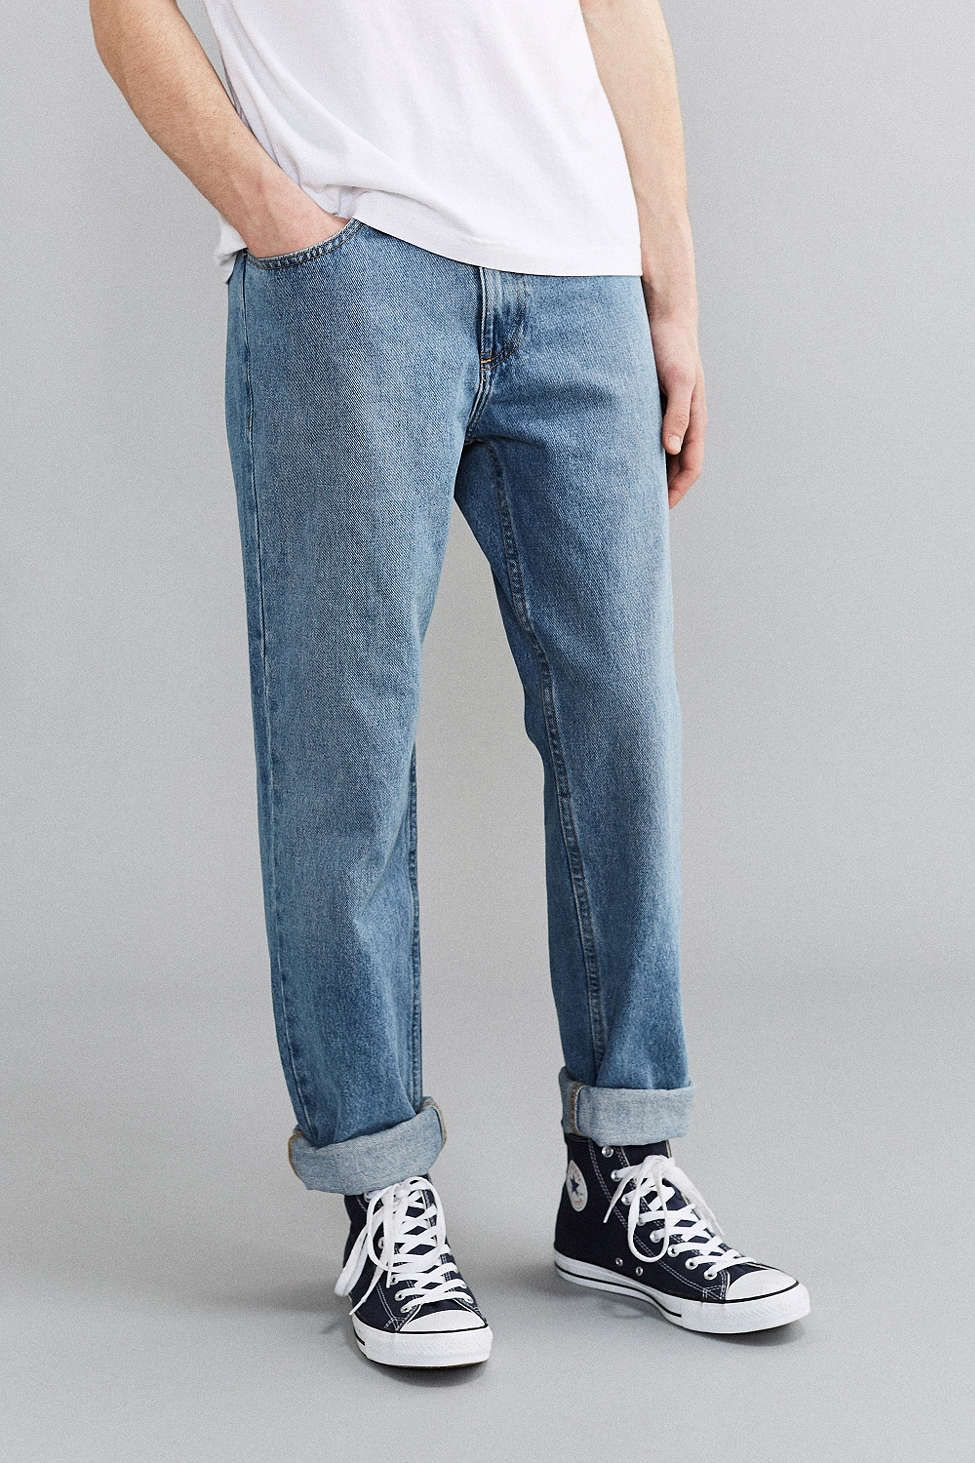 Calvin Klein X Uo Stonewash Vintage Relaxed Jean Urban Outfitters Mens Fashion Jeans Streetwear Jeans Jeans Outfit Men